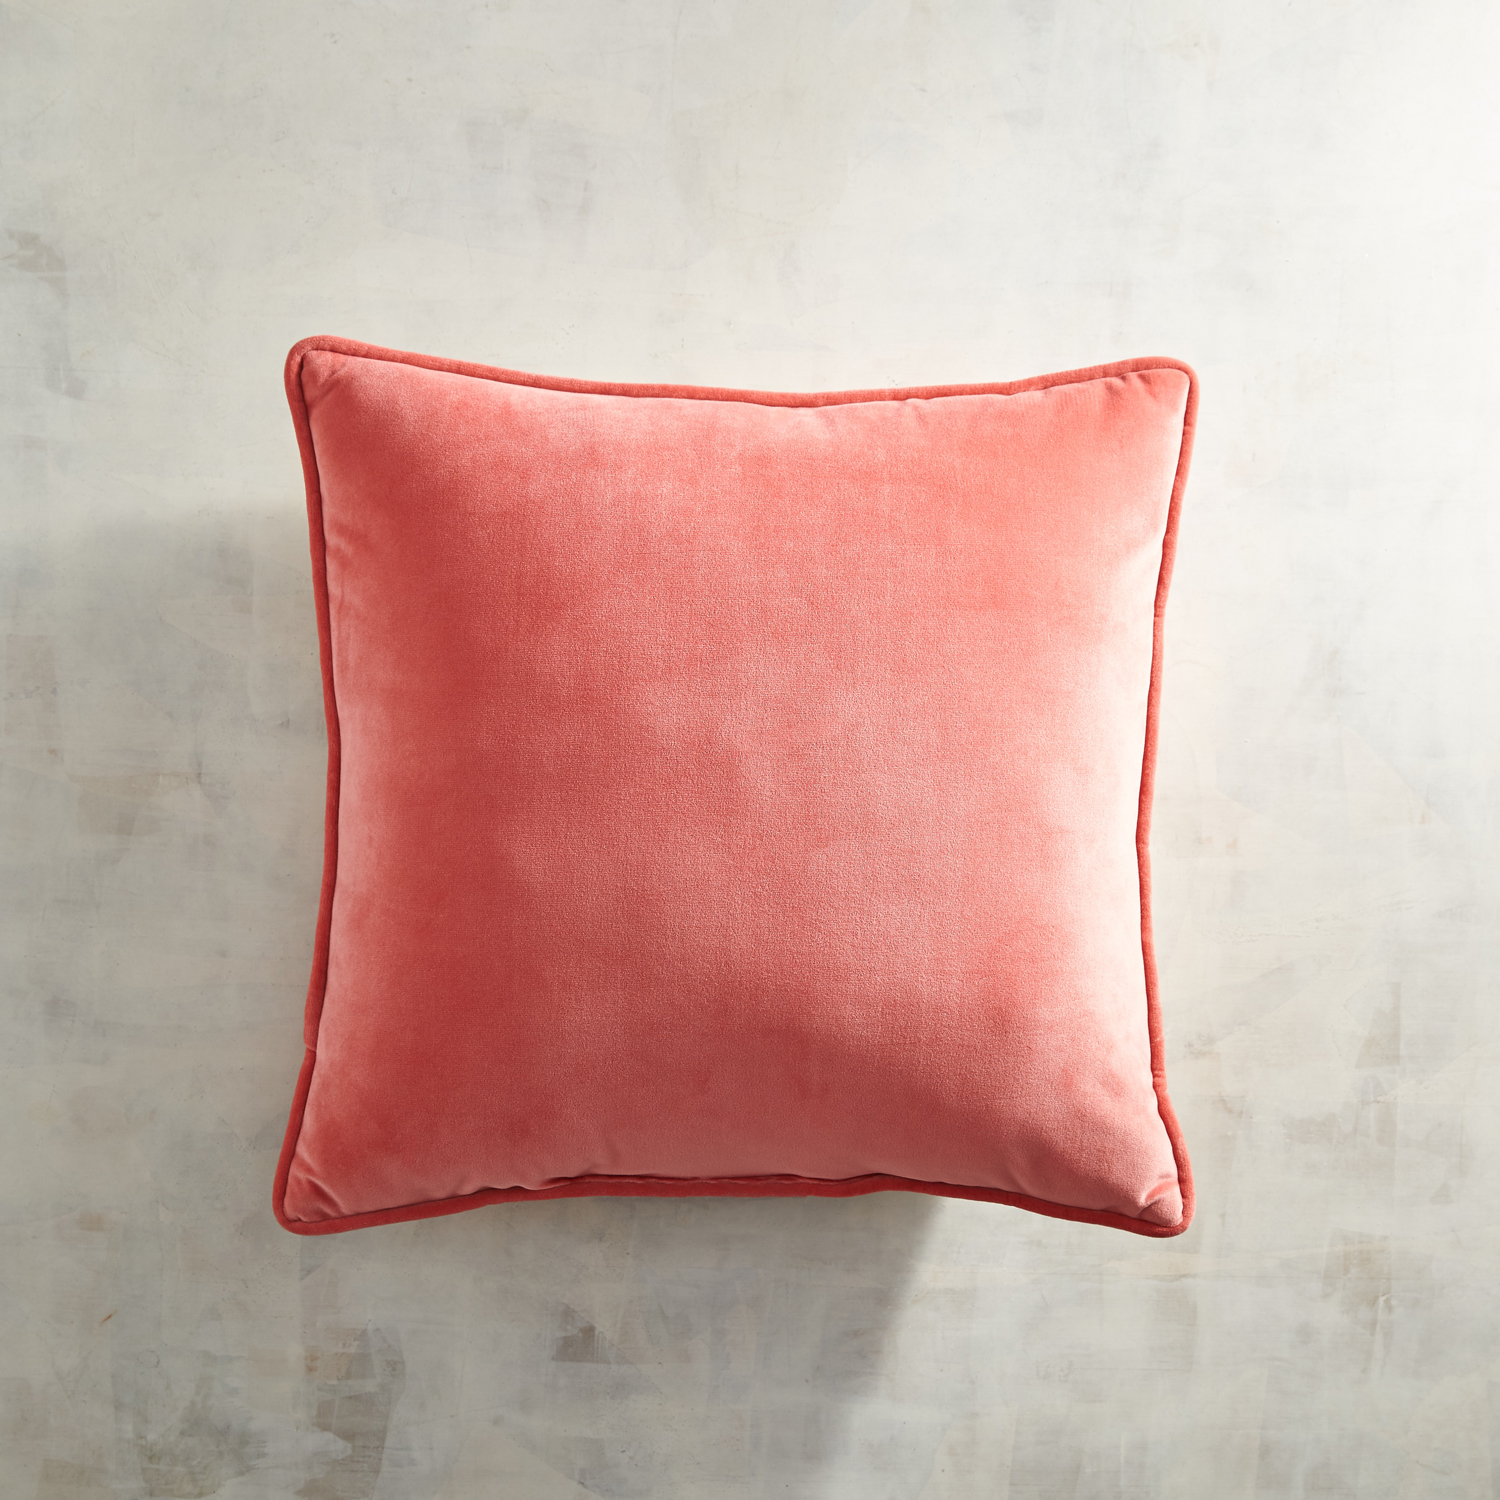 Beaded & Embroidered Coral Pillow